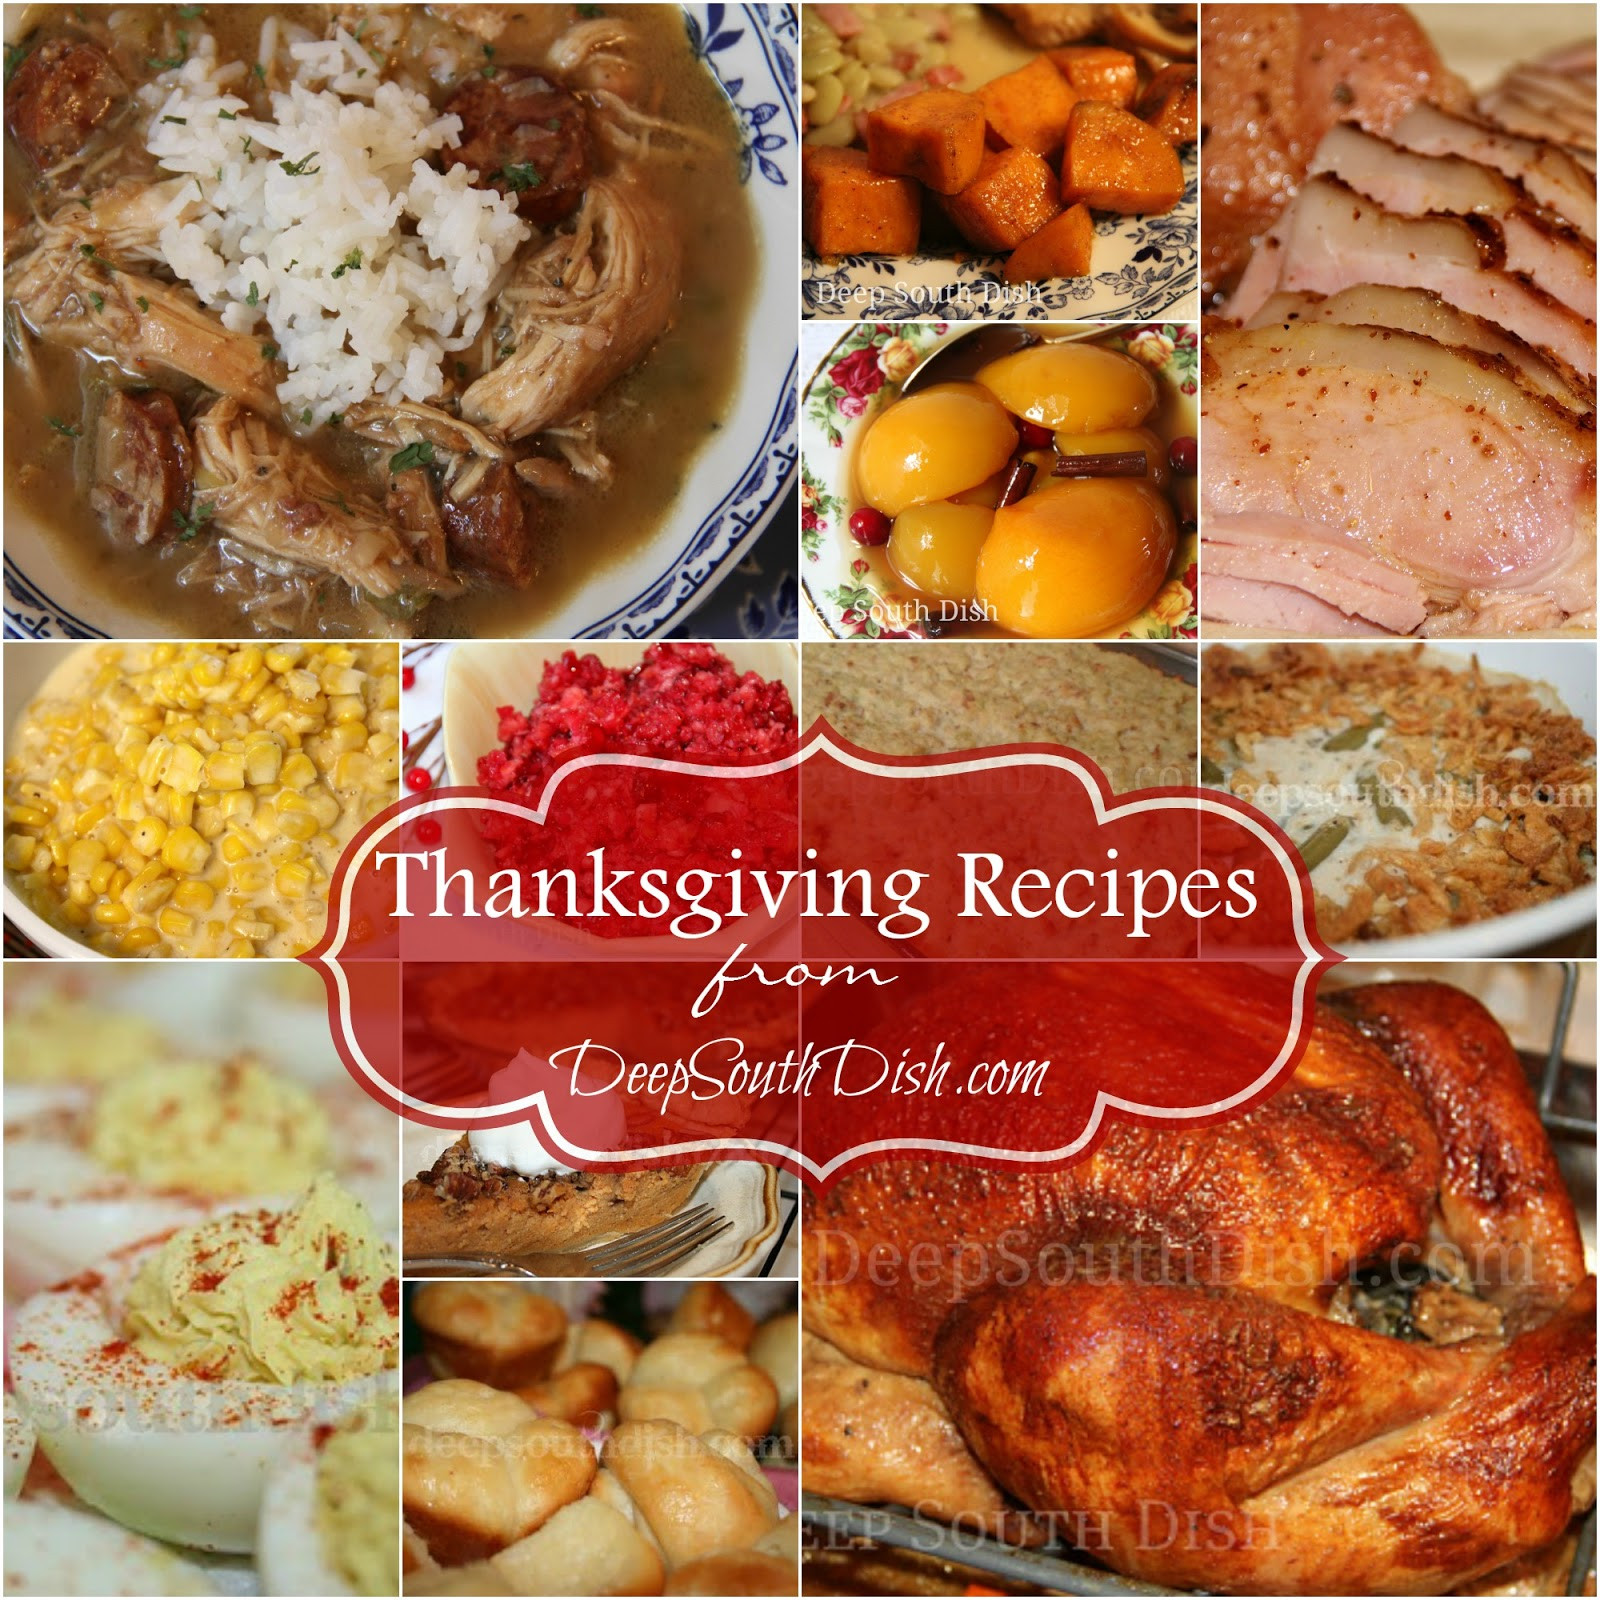 Soul Food Christmas Dinner Menu  Deep South Dish Deep South Southern Thanksgiving Recipes